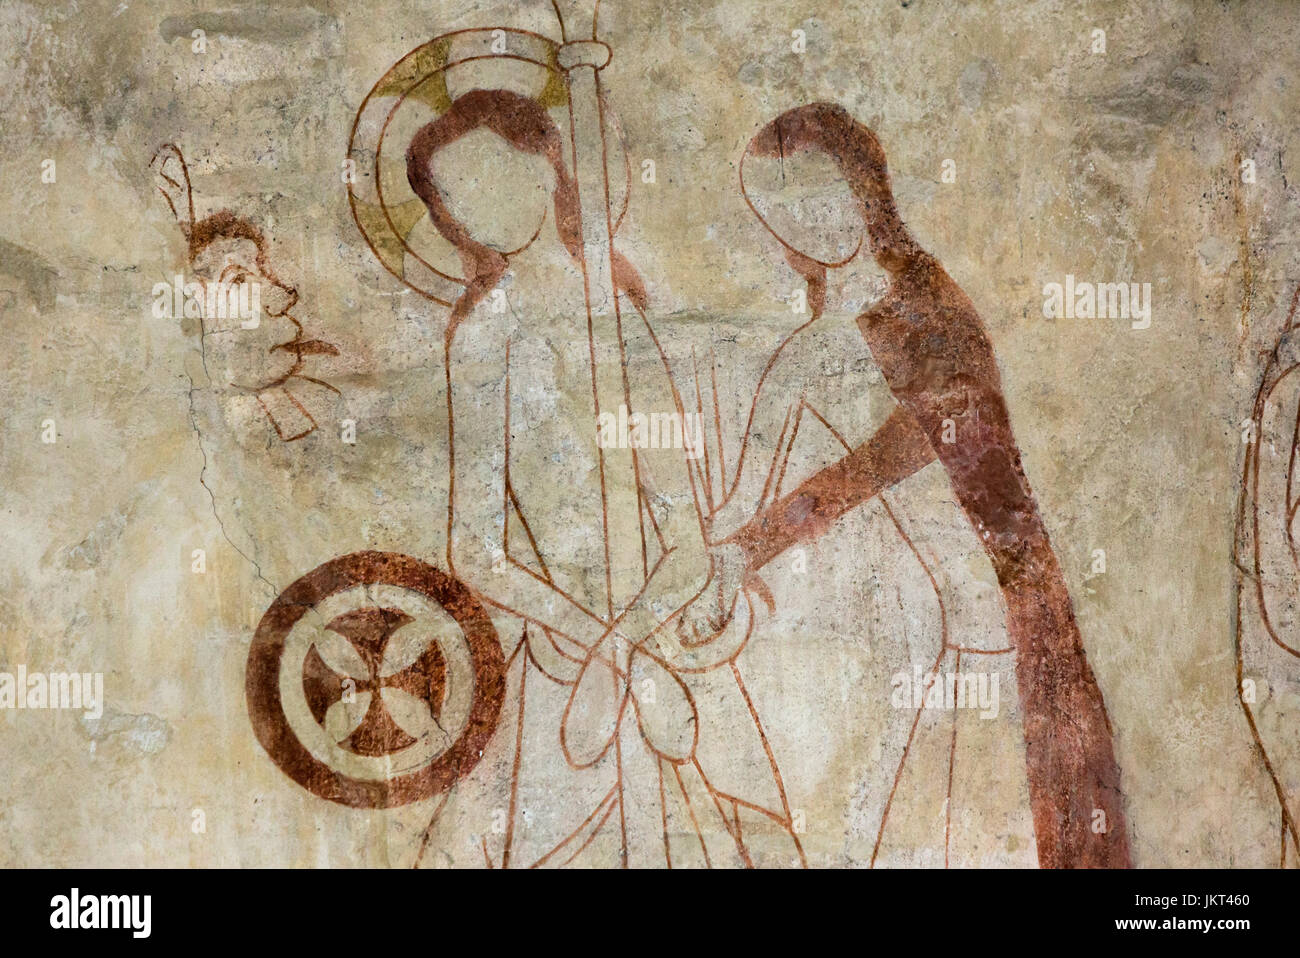 Danish medieval religious fresco from the 14th century in the Romanesque style Oerslev Church depicting the flogging - Stock Image